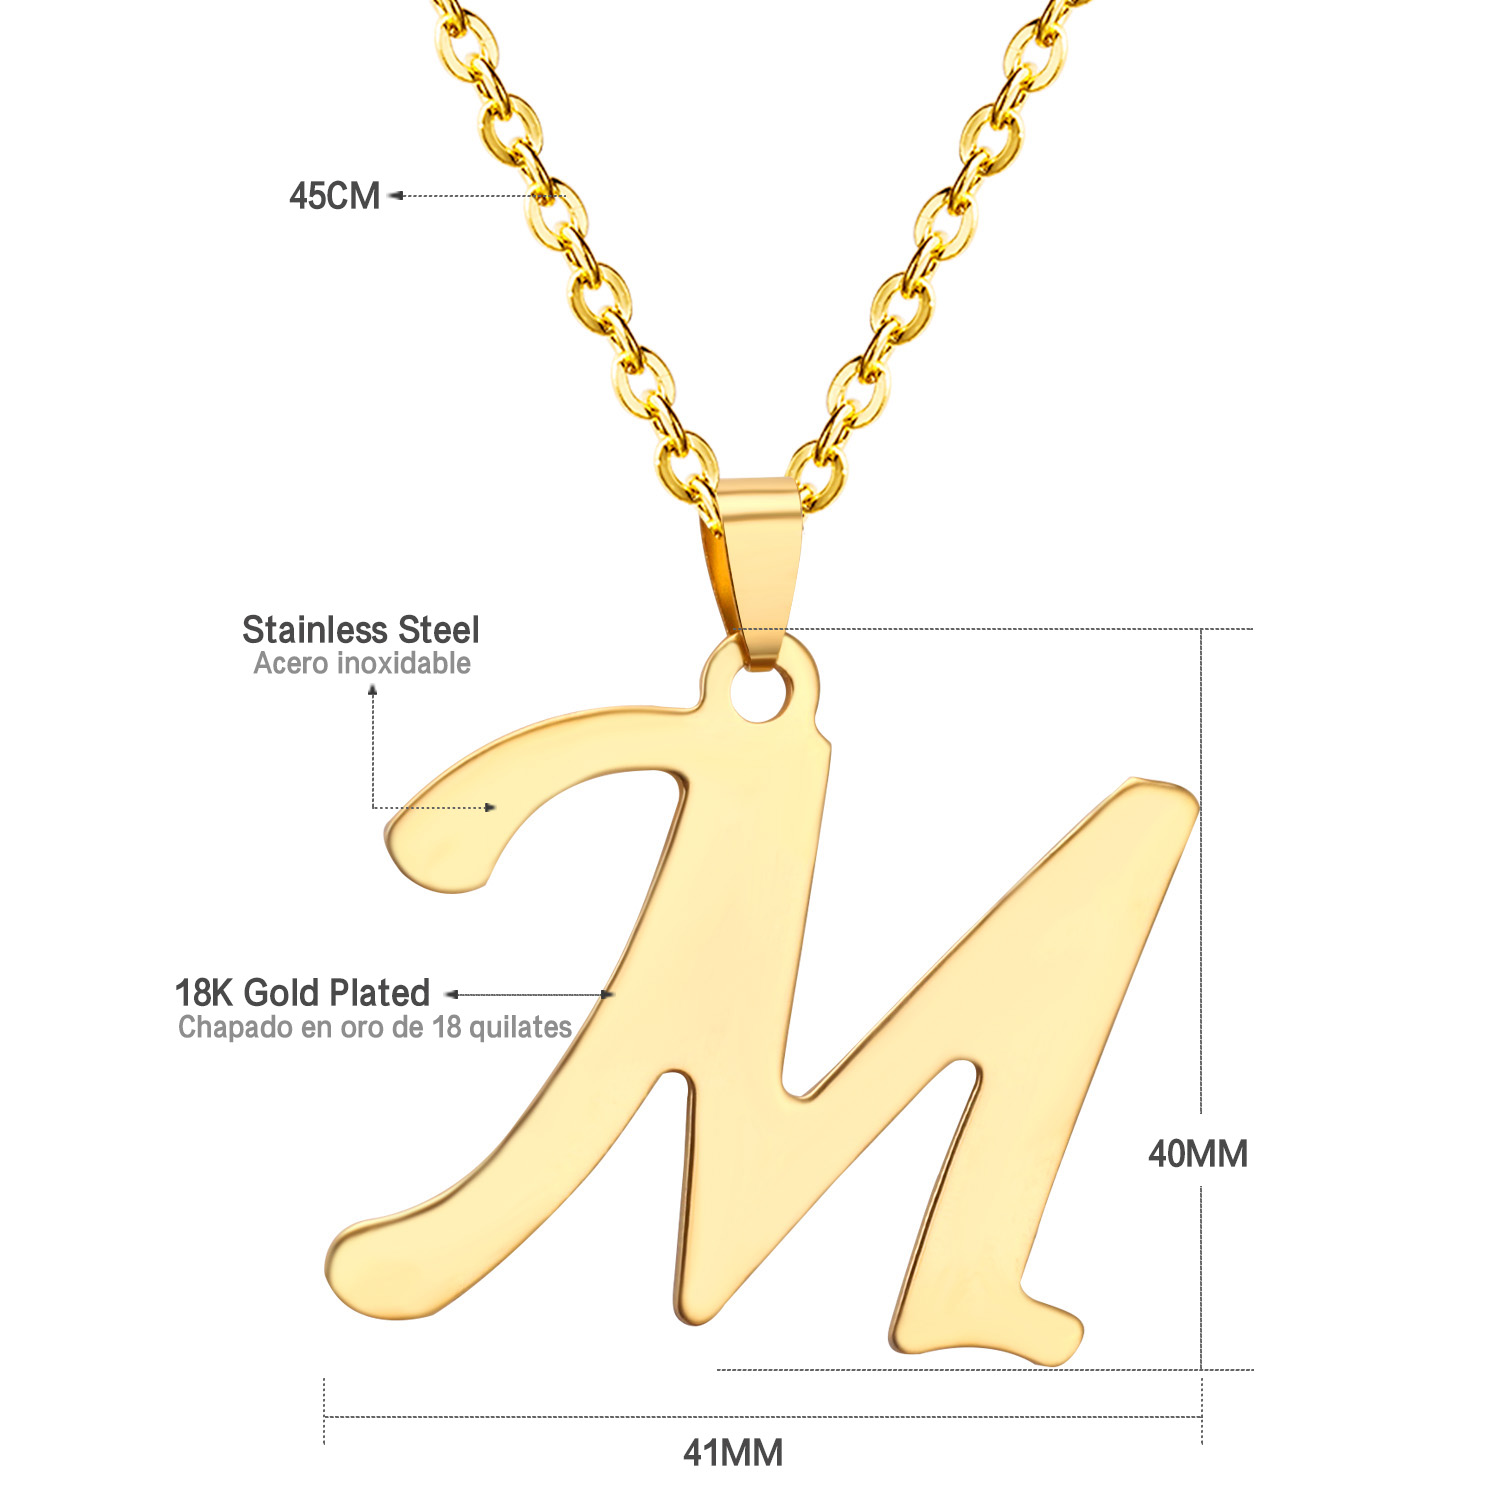 mom jewelry embroidered her letter fullxfull il for updates initial embroidery monogrammed personalized necklace gifts iss shop en pendant custom merriweathercouncil